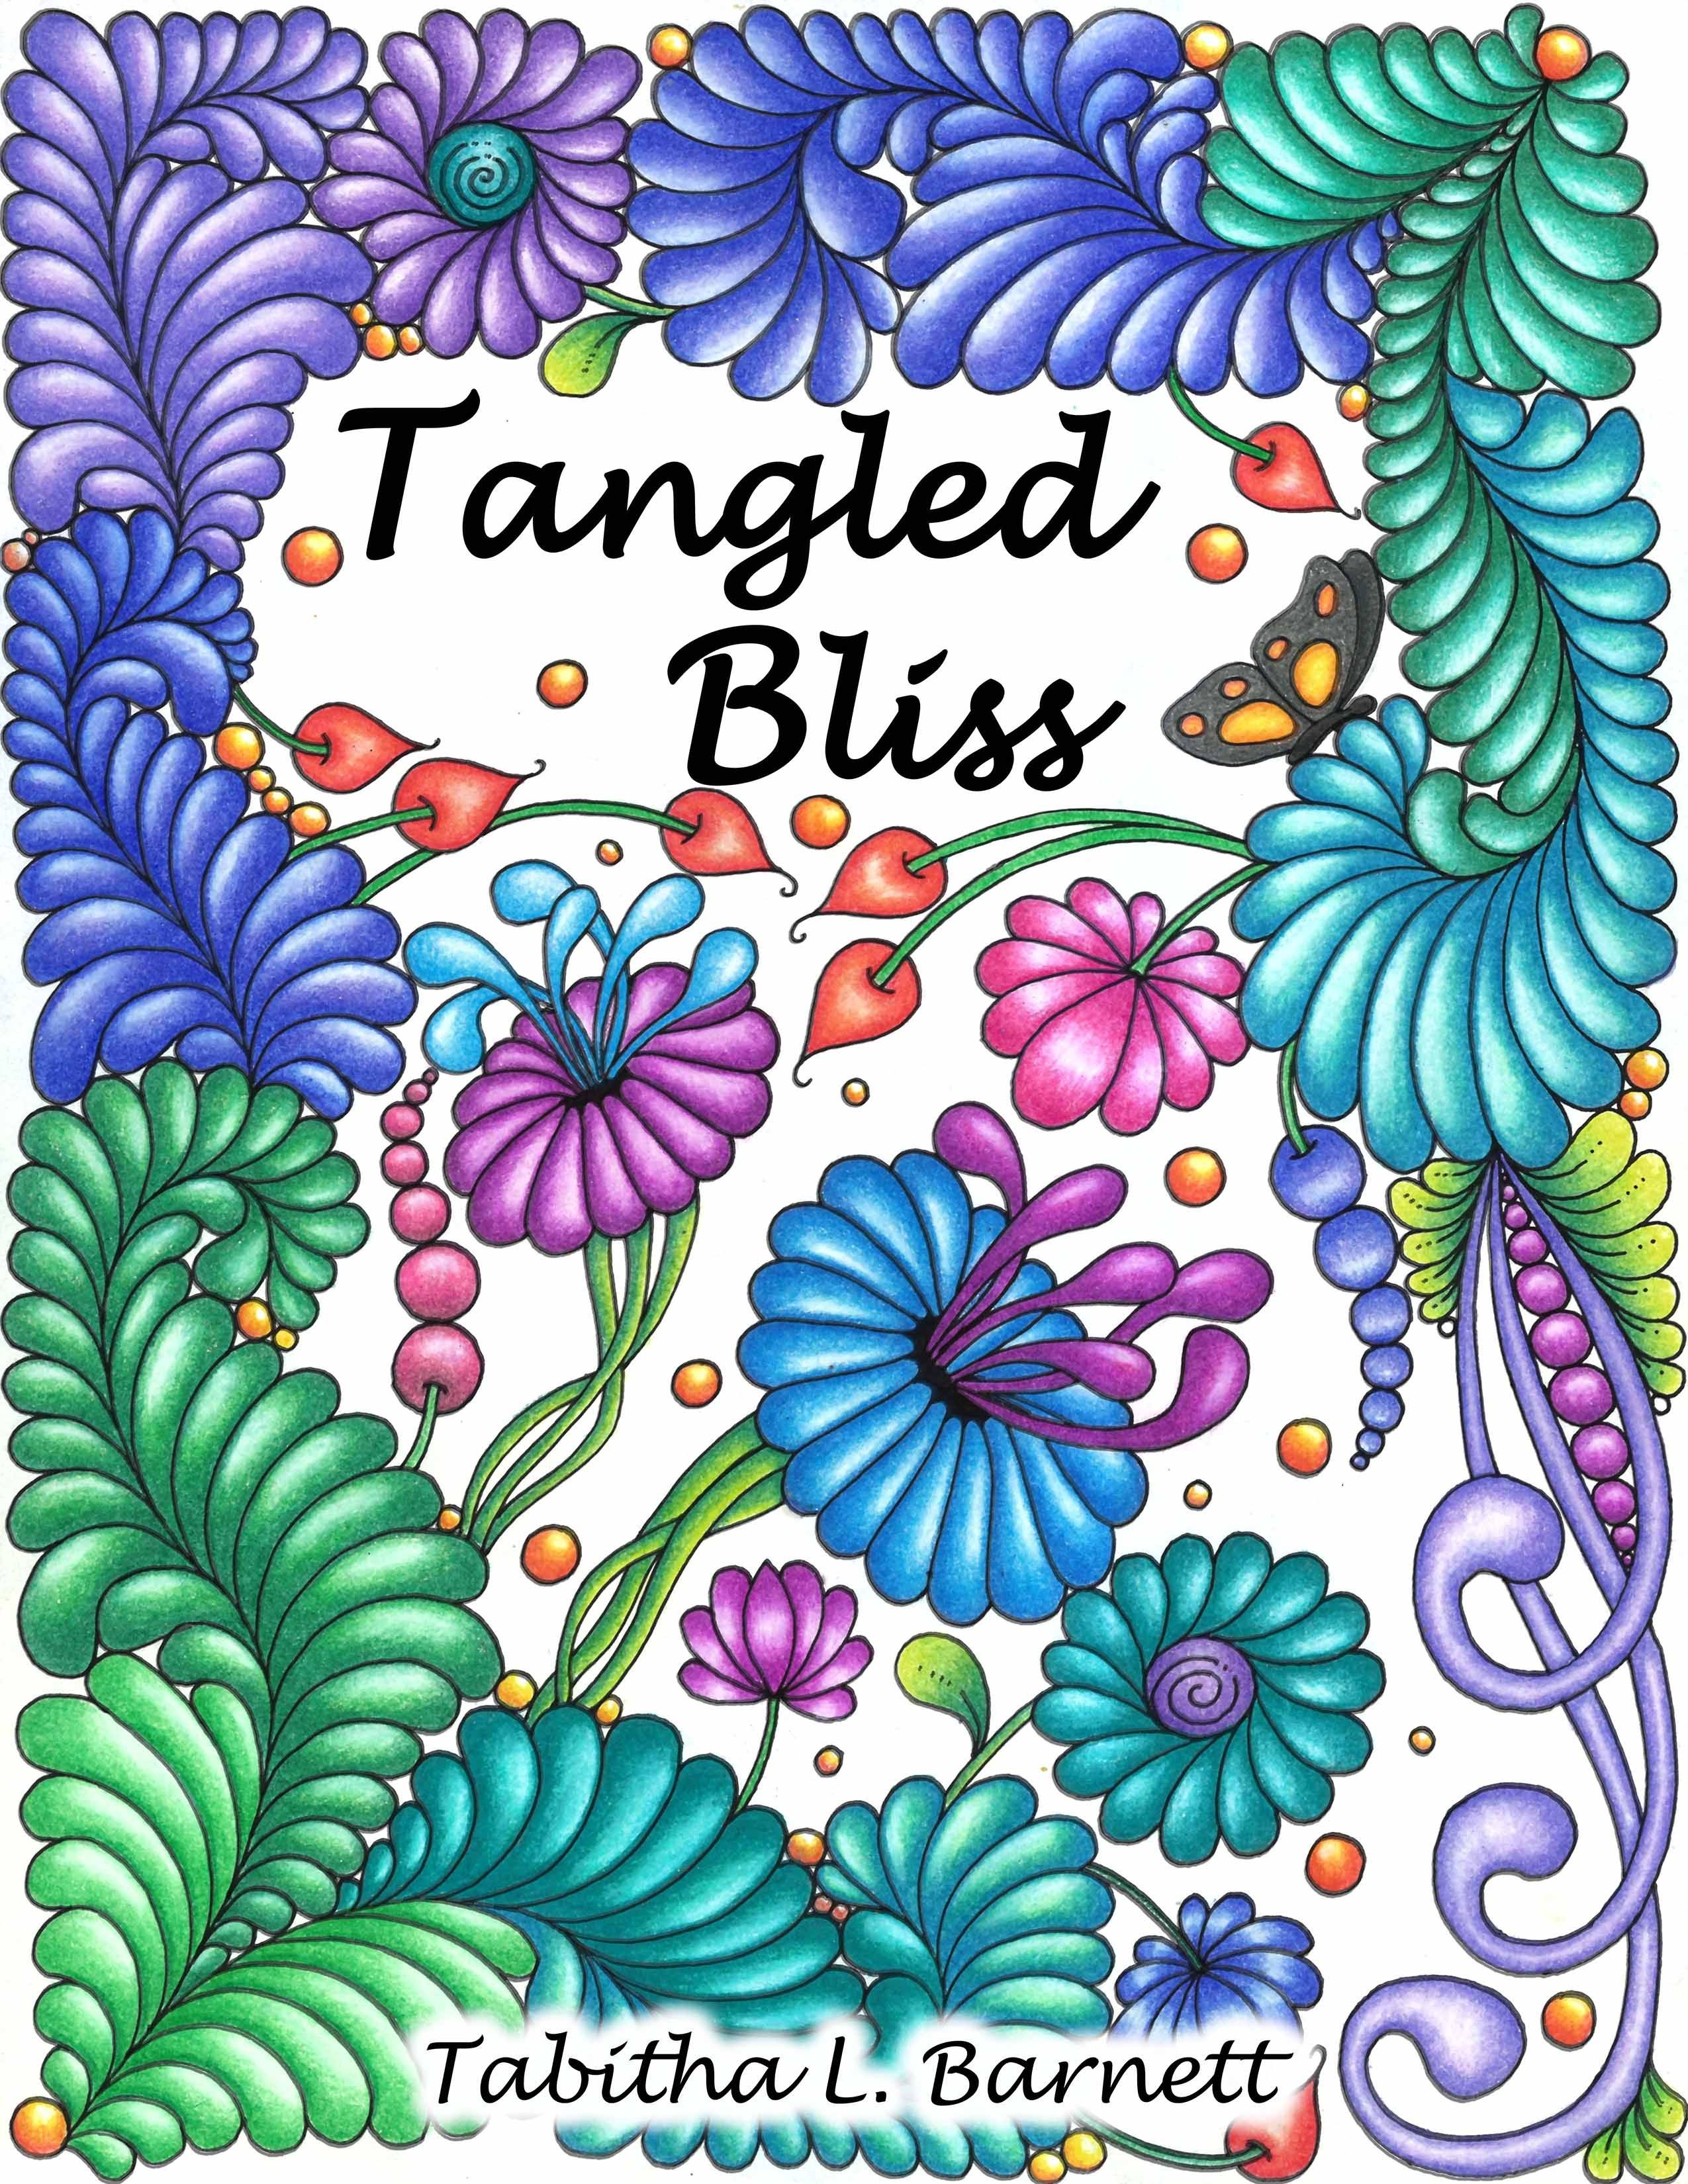 Tangled Bliss Adult Coloring Book In PDF Format 36 Pages To Print And Color